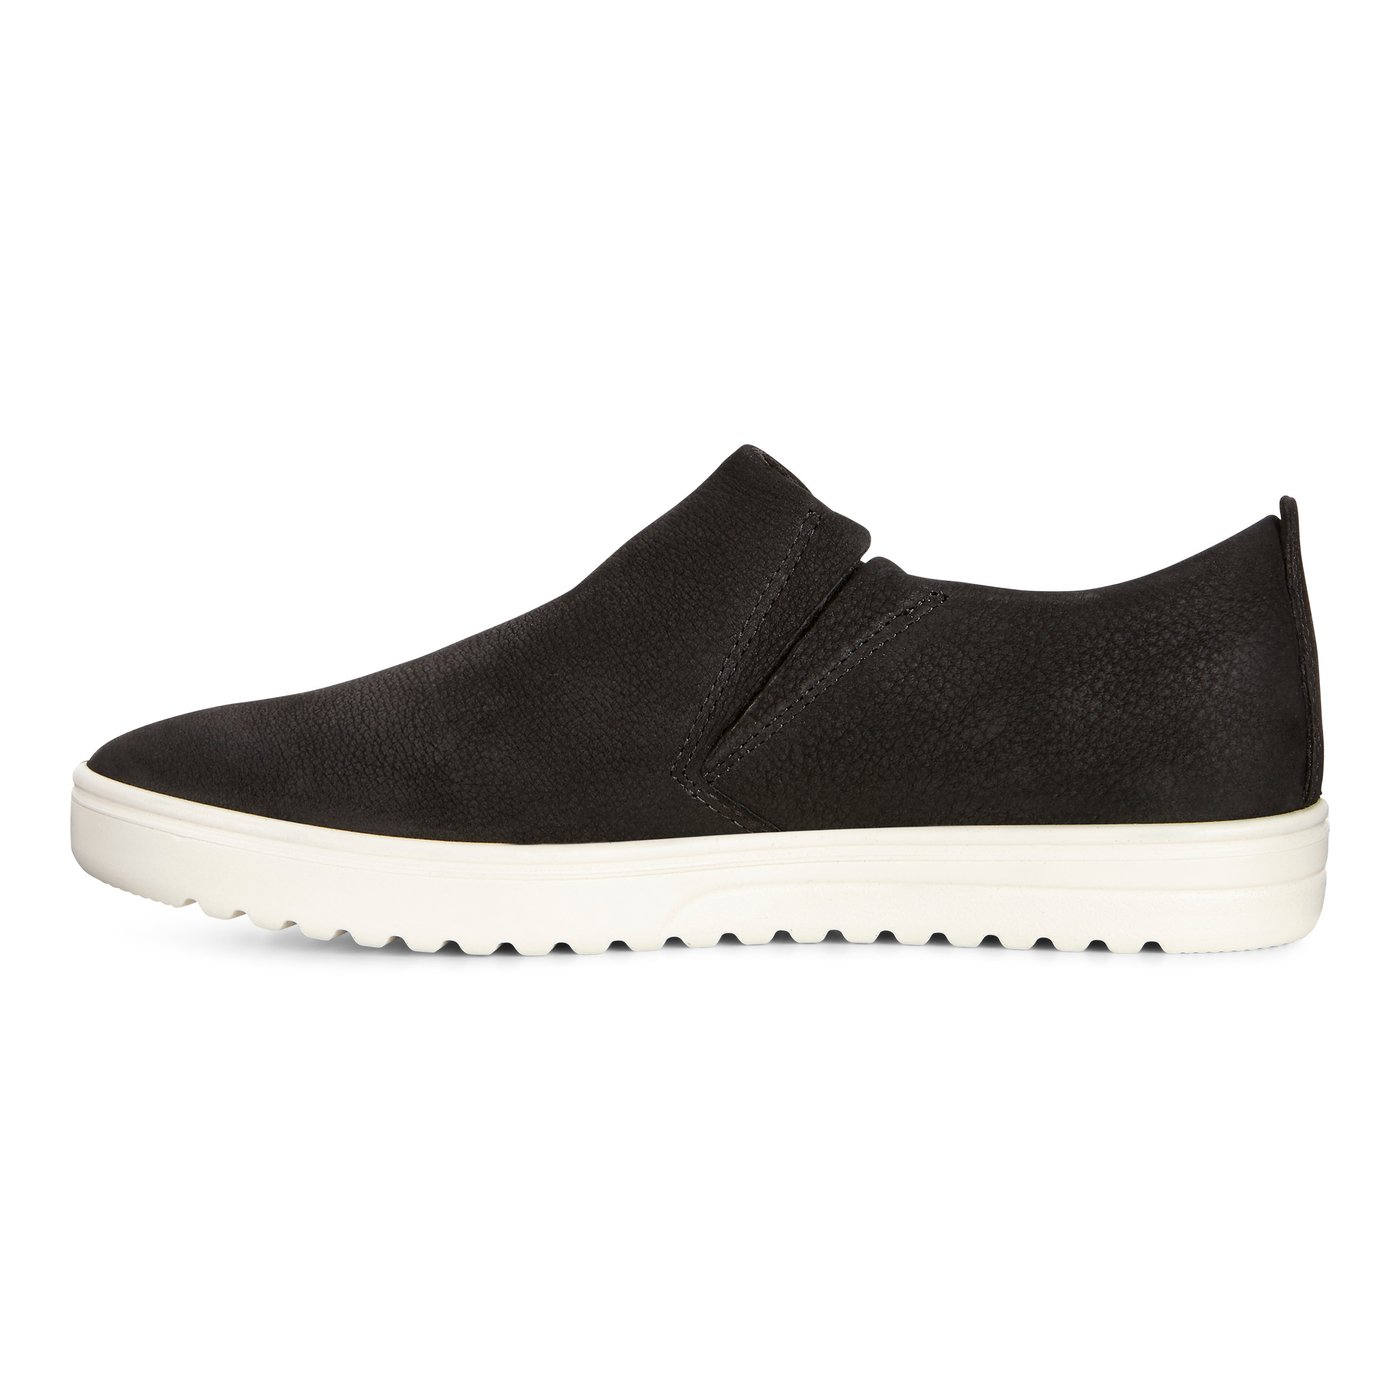 7a812eb0597 ECCO Fara | Women's Casual Shoes | ECCO® Shoes